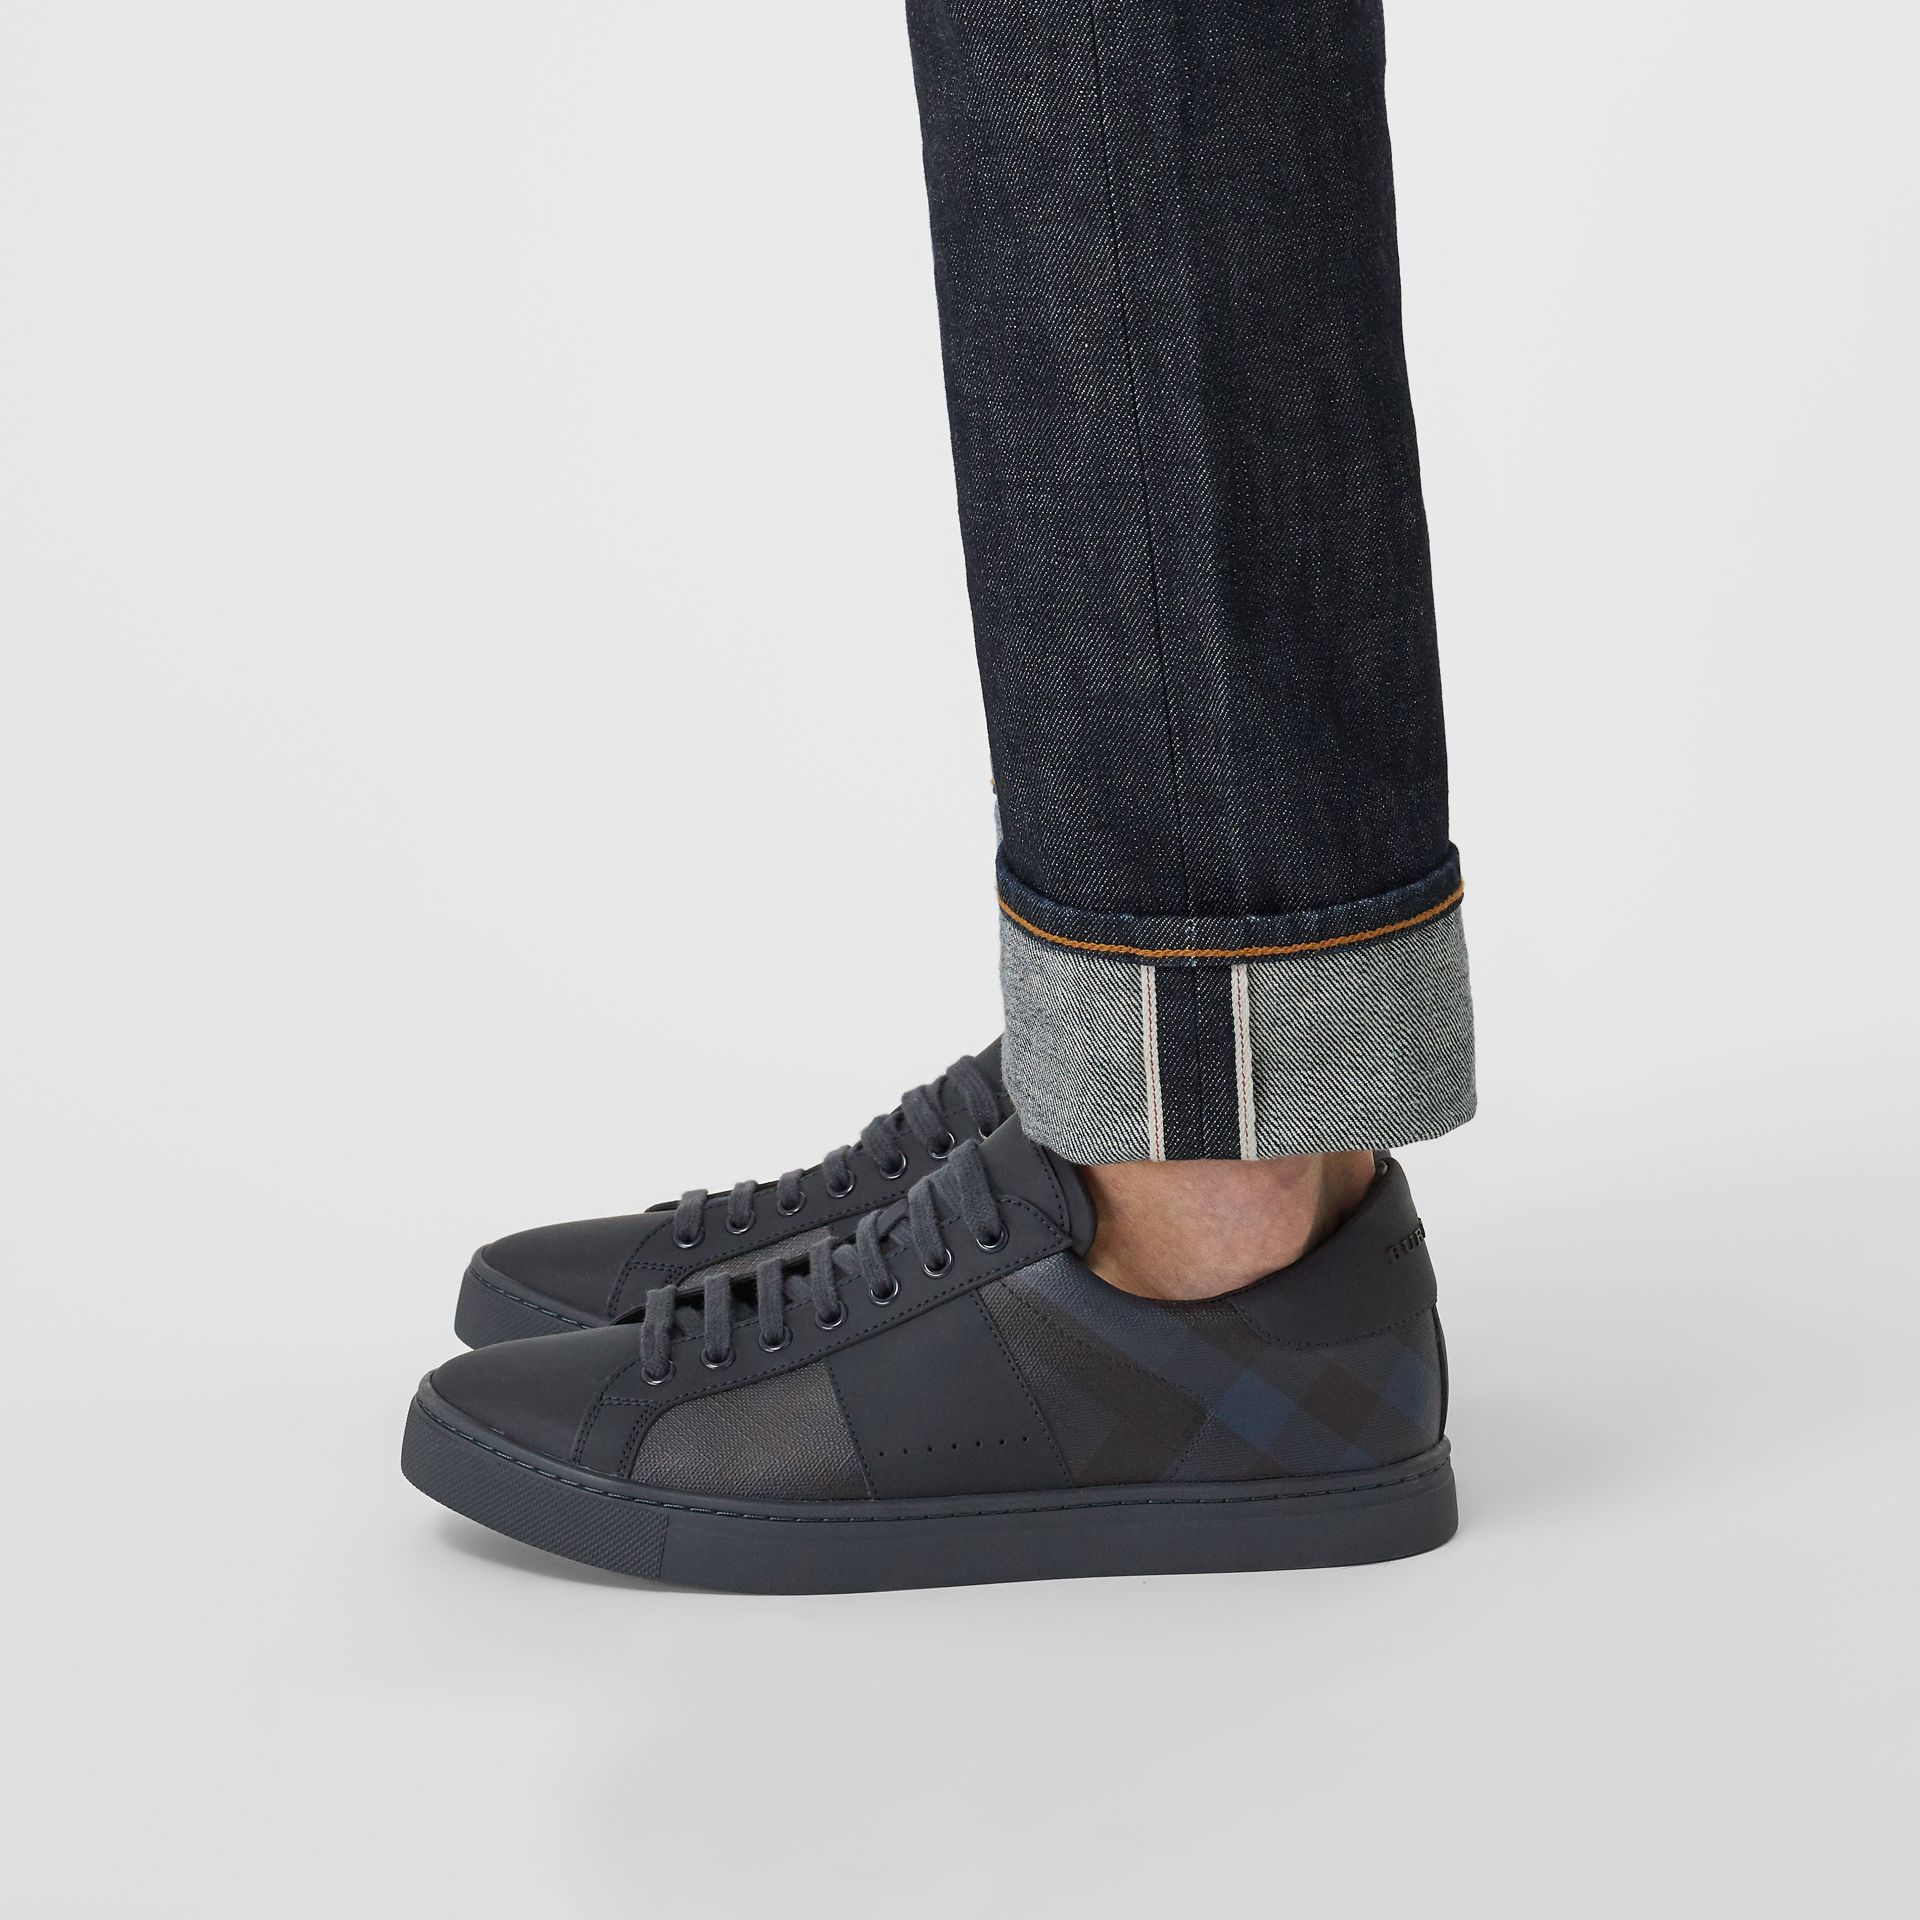 Sneakers en cuir et tissu London check (Marine) - Homme | Burberry Canada - photo de la galerie 2